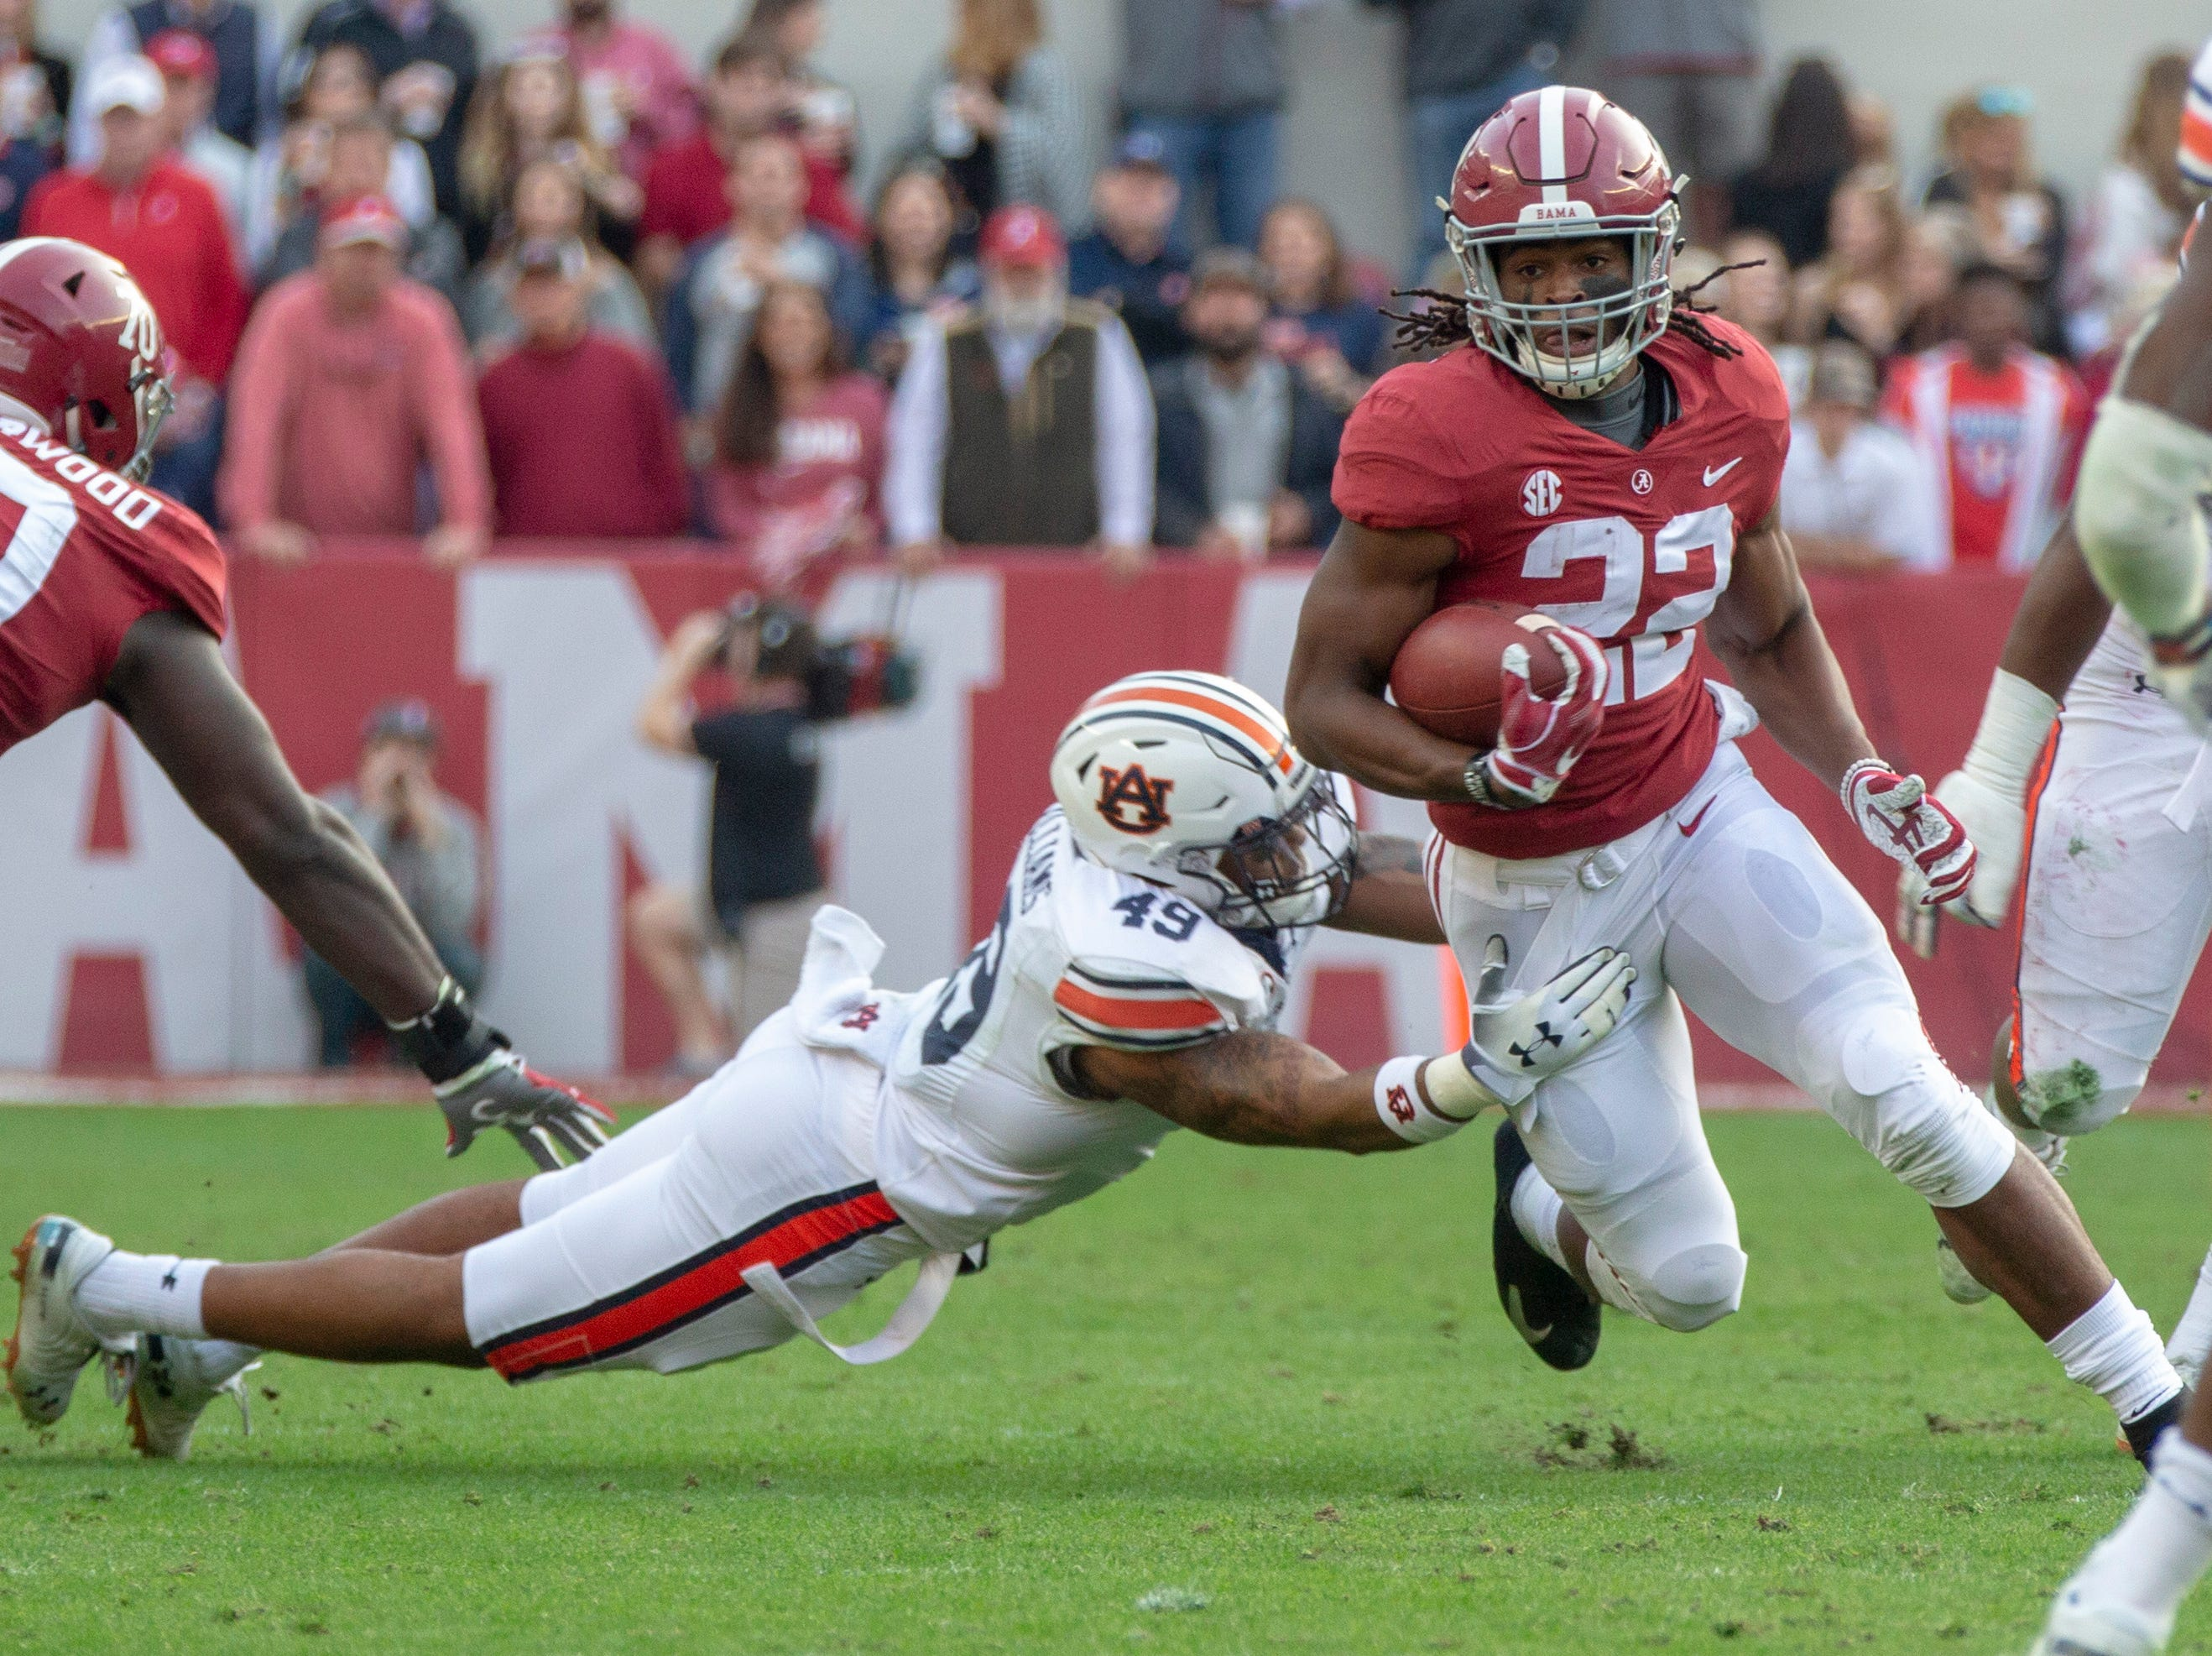 Alabama's Najee Harris runs the ball as he tries to avoid a tackle by Auburn's Darrell Williams.